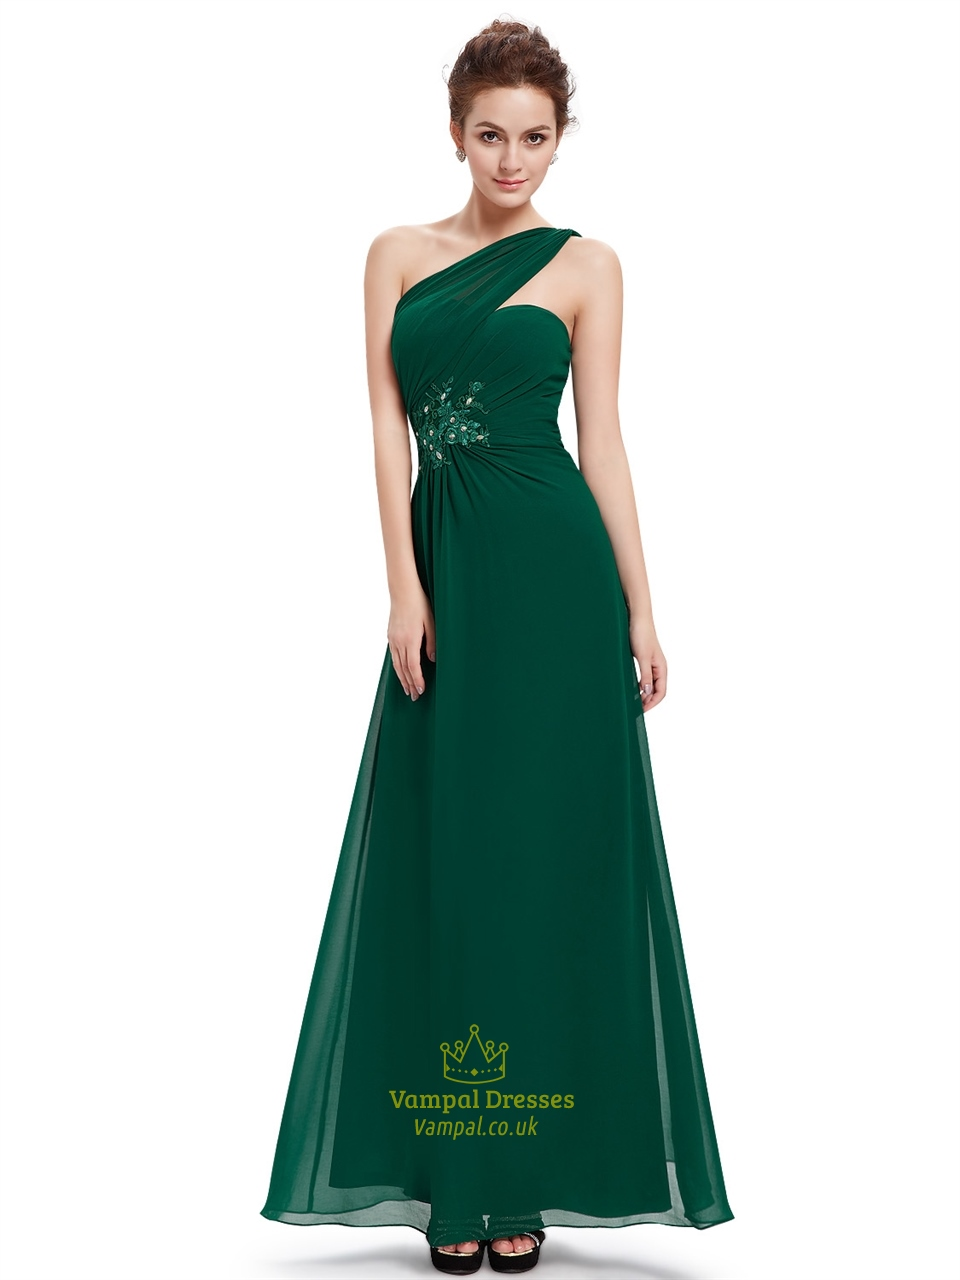 Emerald Green One Shoulder Chiffon Prom Dress With Floral